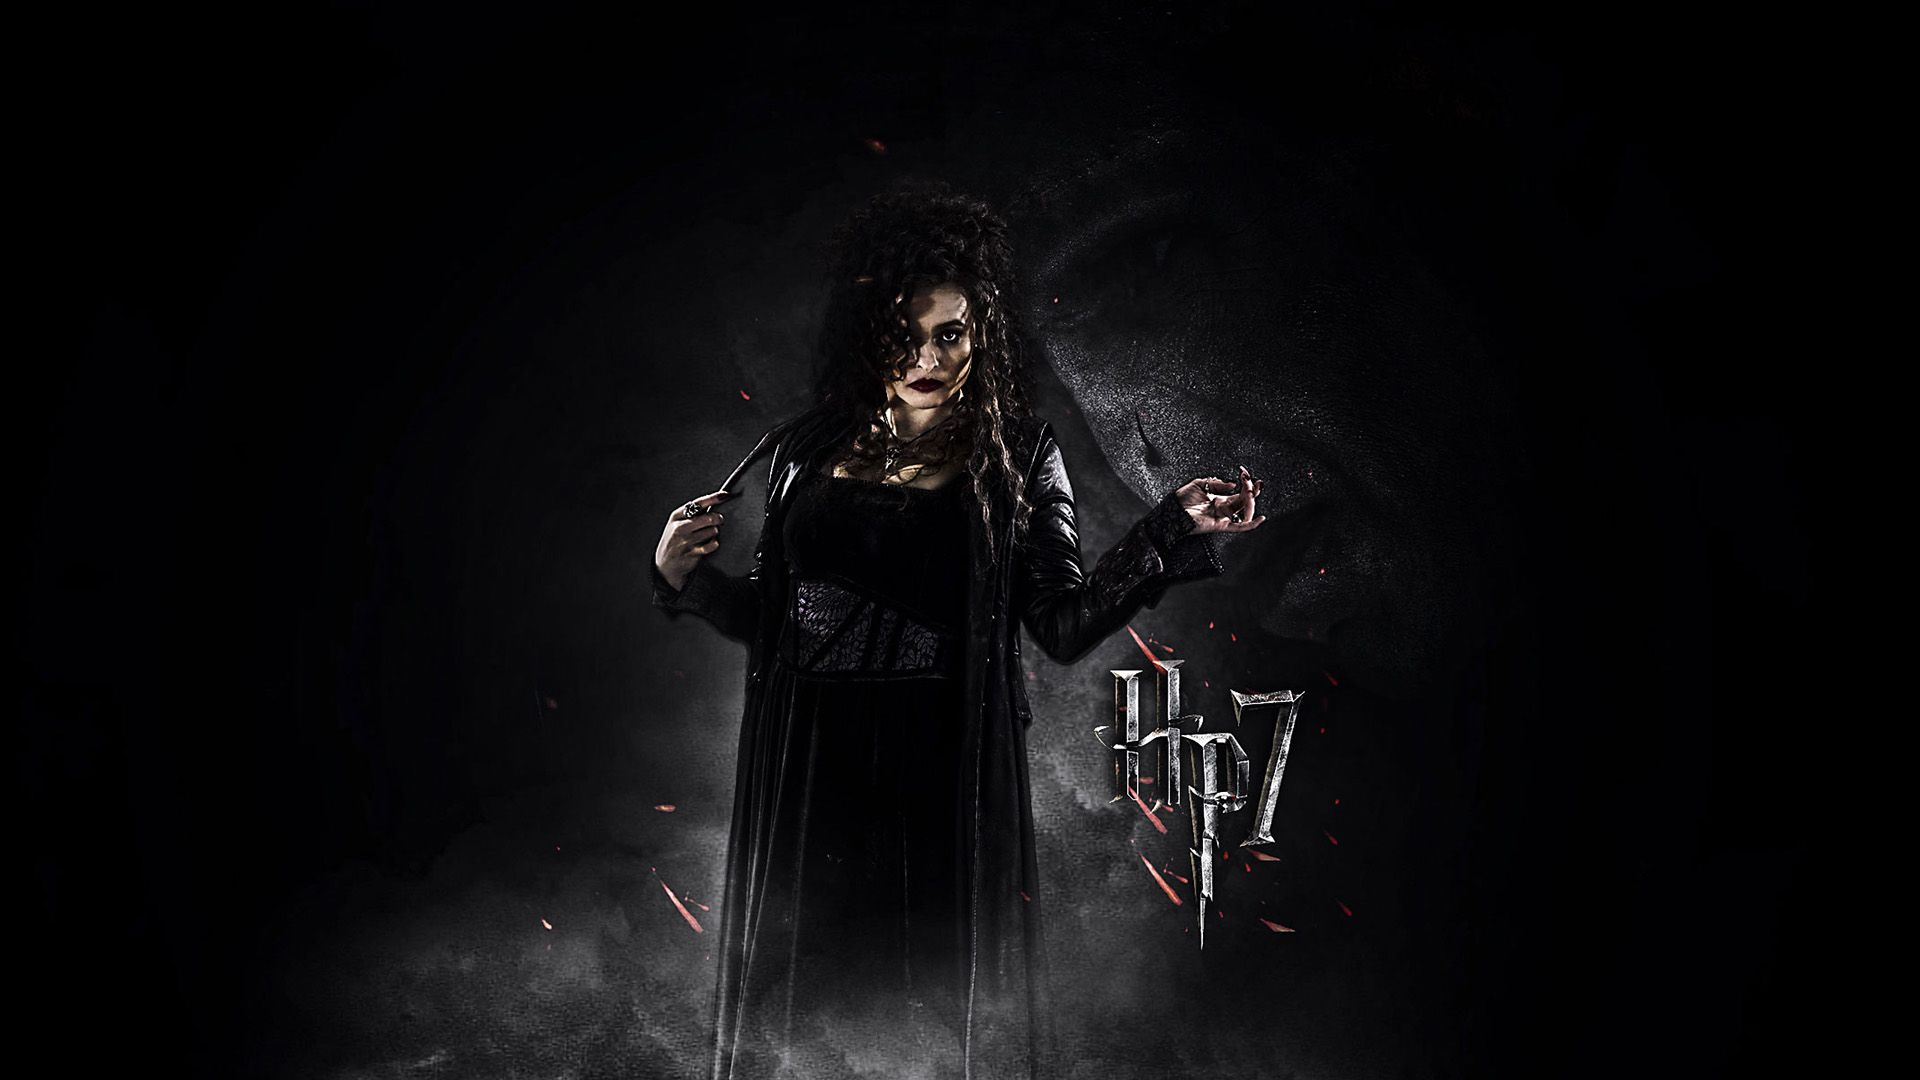 Helena Bonham Carter as Bellatrix Lestrange in Harry Potter and the Deathly Hallows: Part 2.